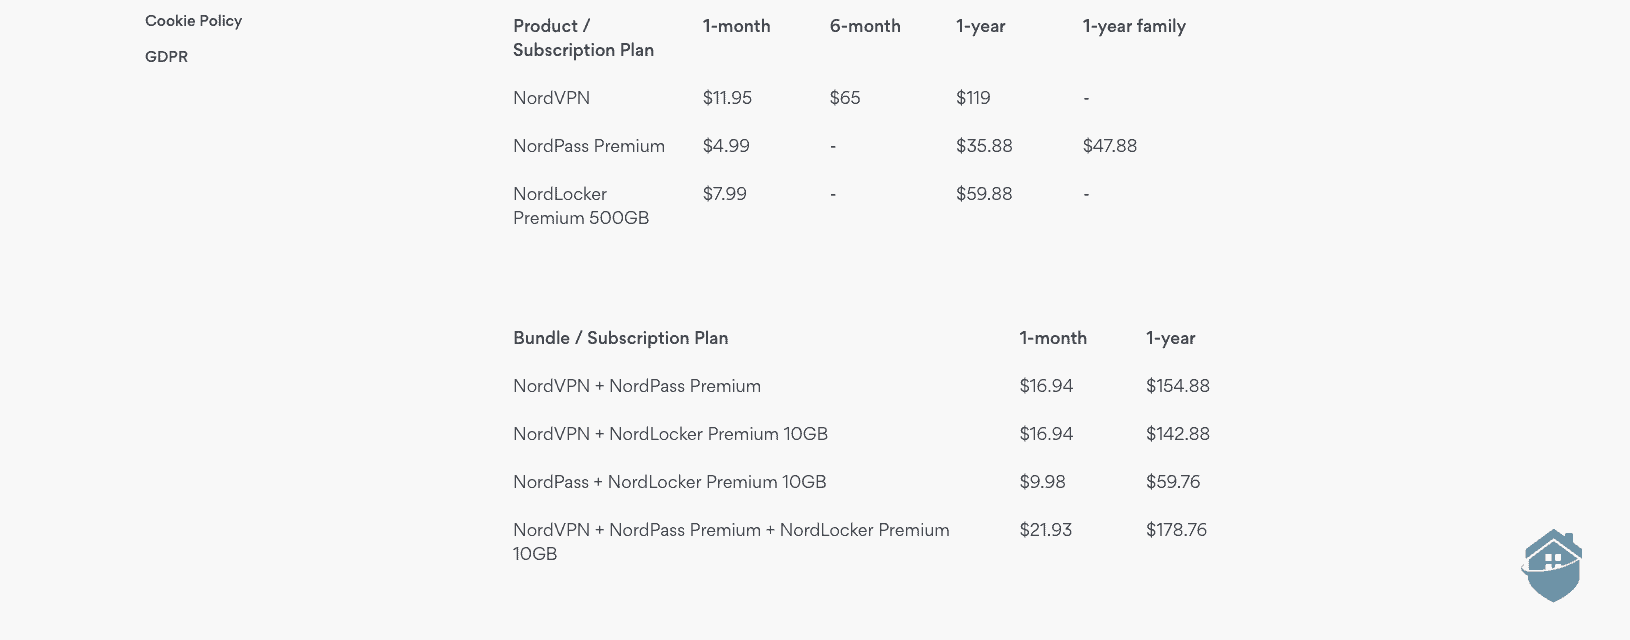 NordVPN is $119 per year after the first year without a password manager or secure storage